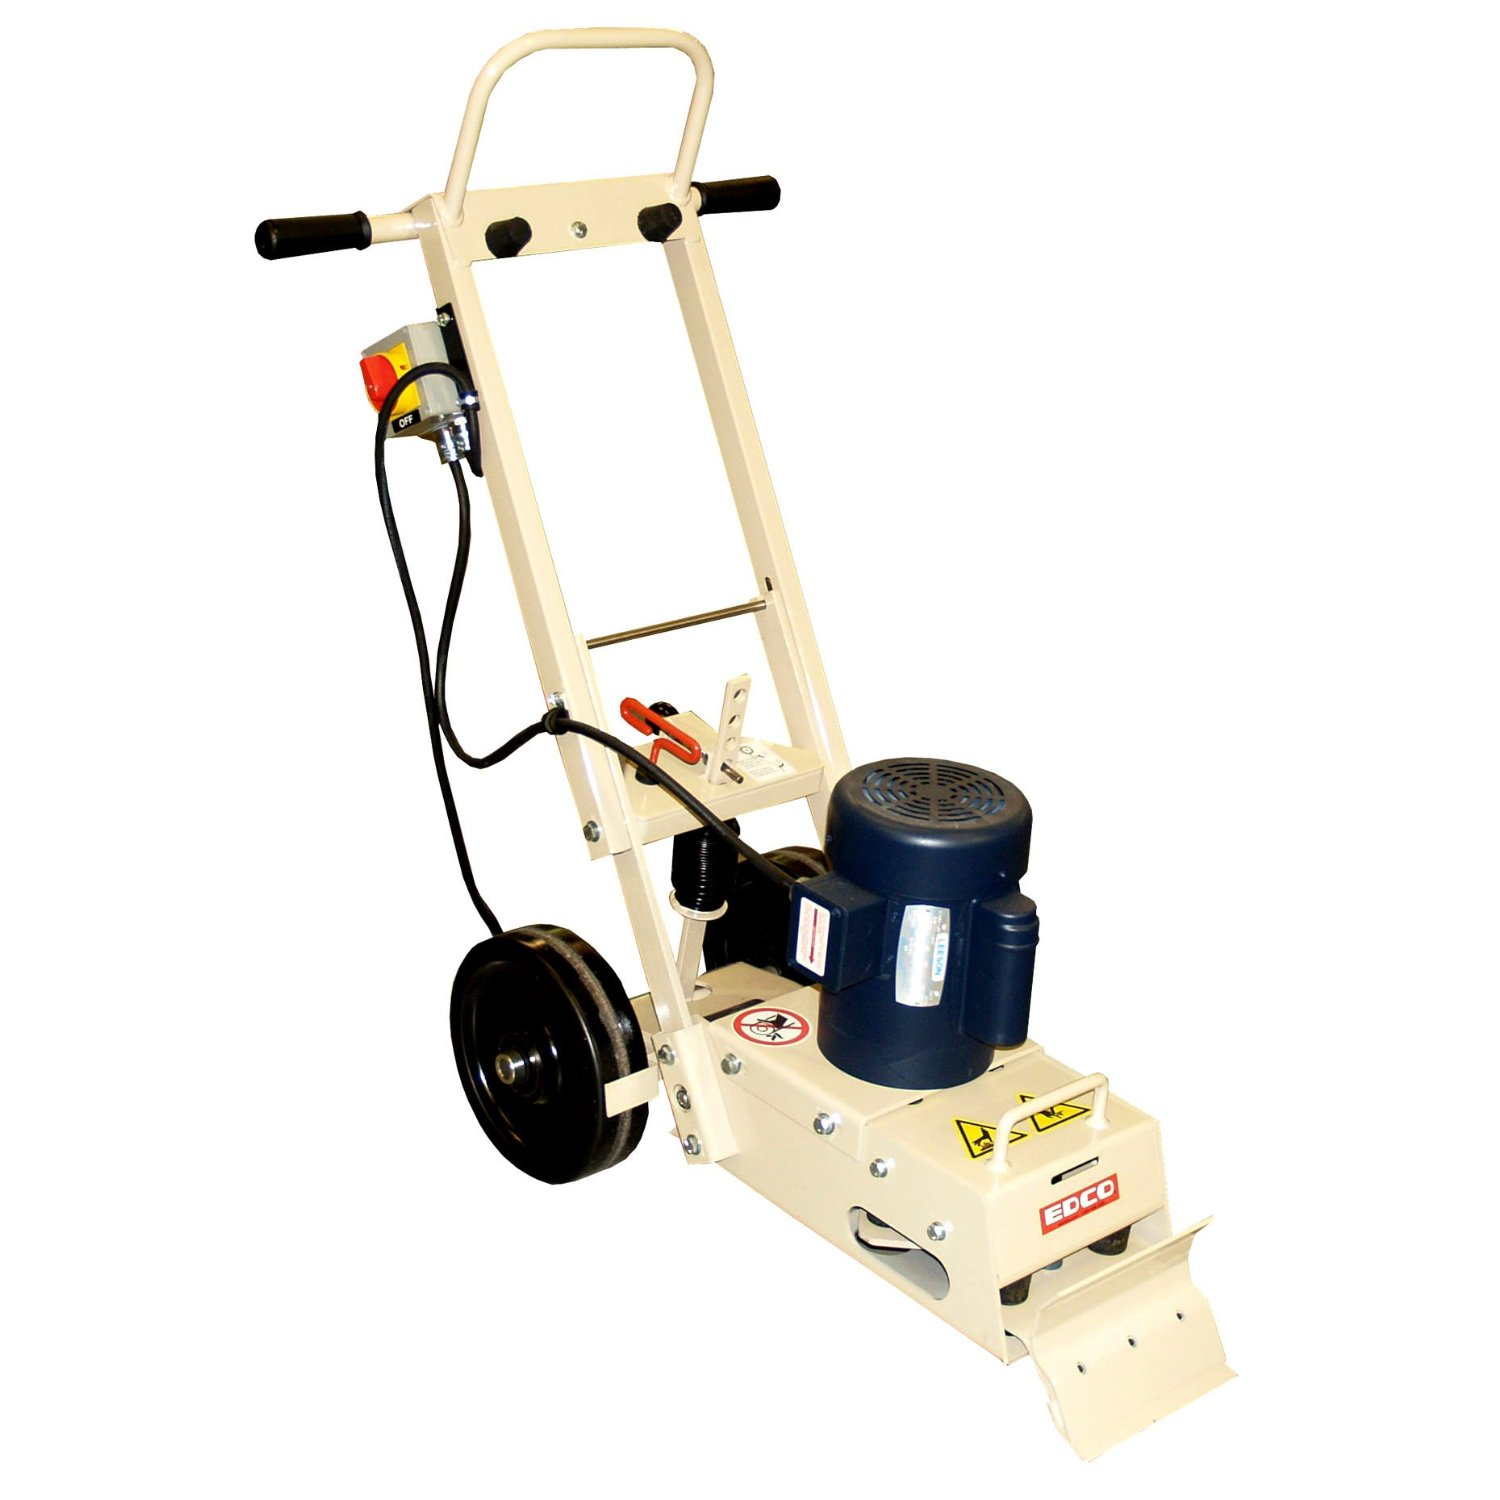 Carpet Cleaner For Rent Images Hardwood Floor